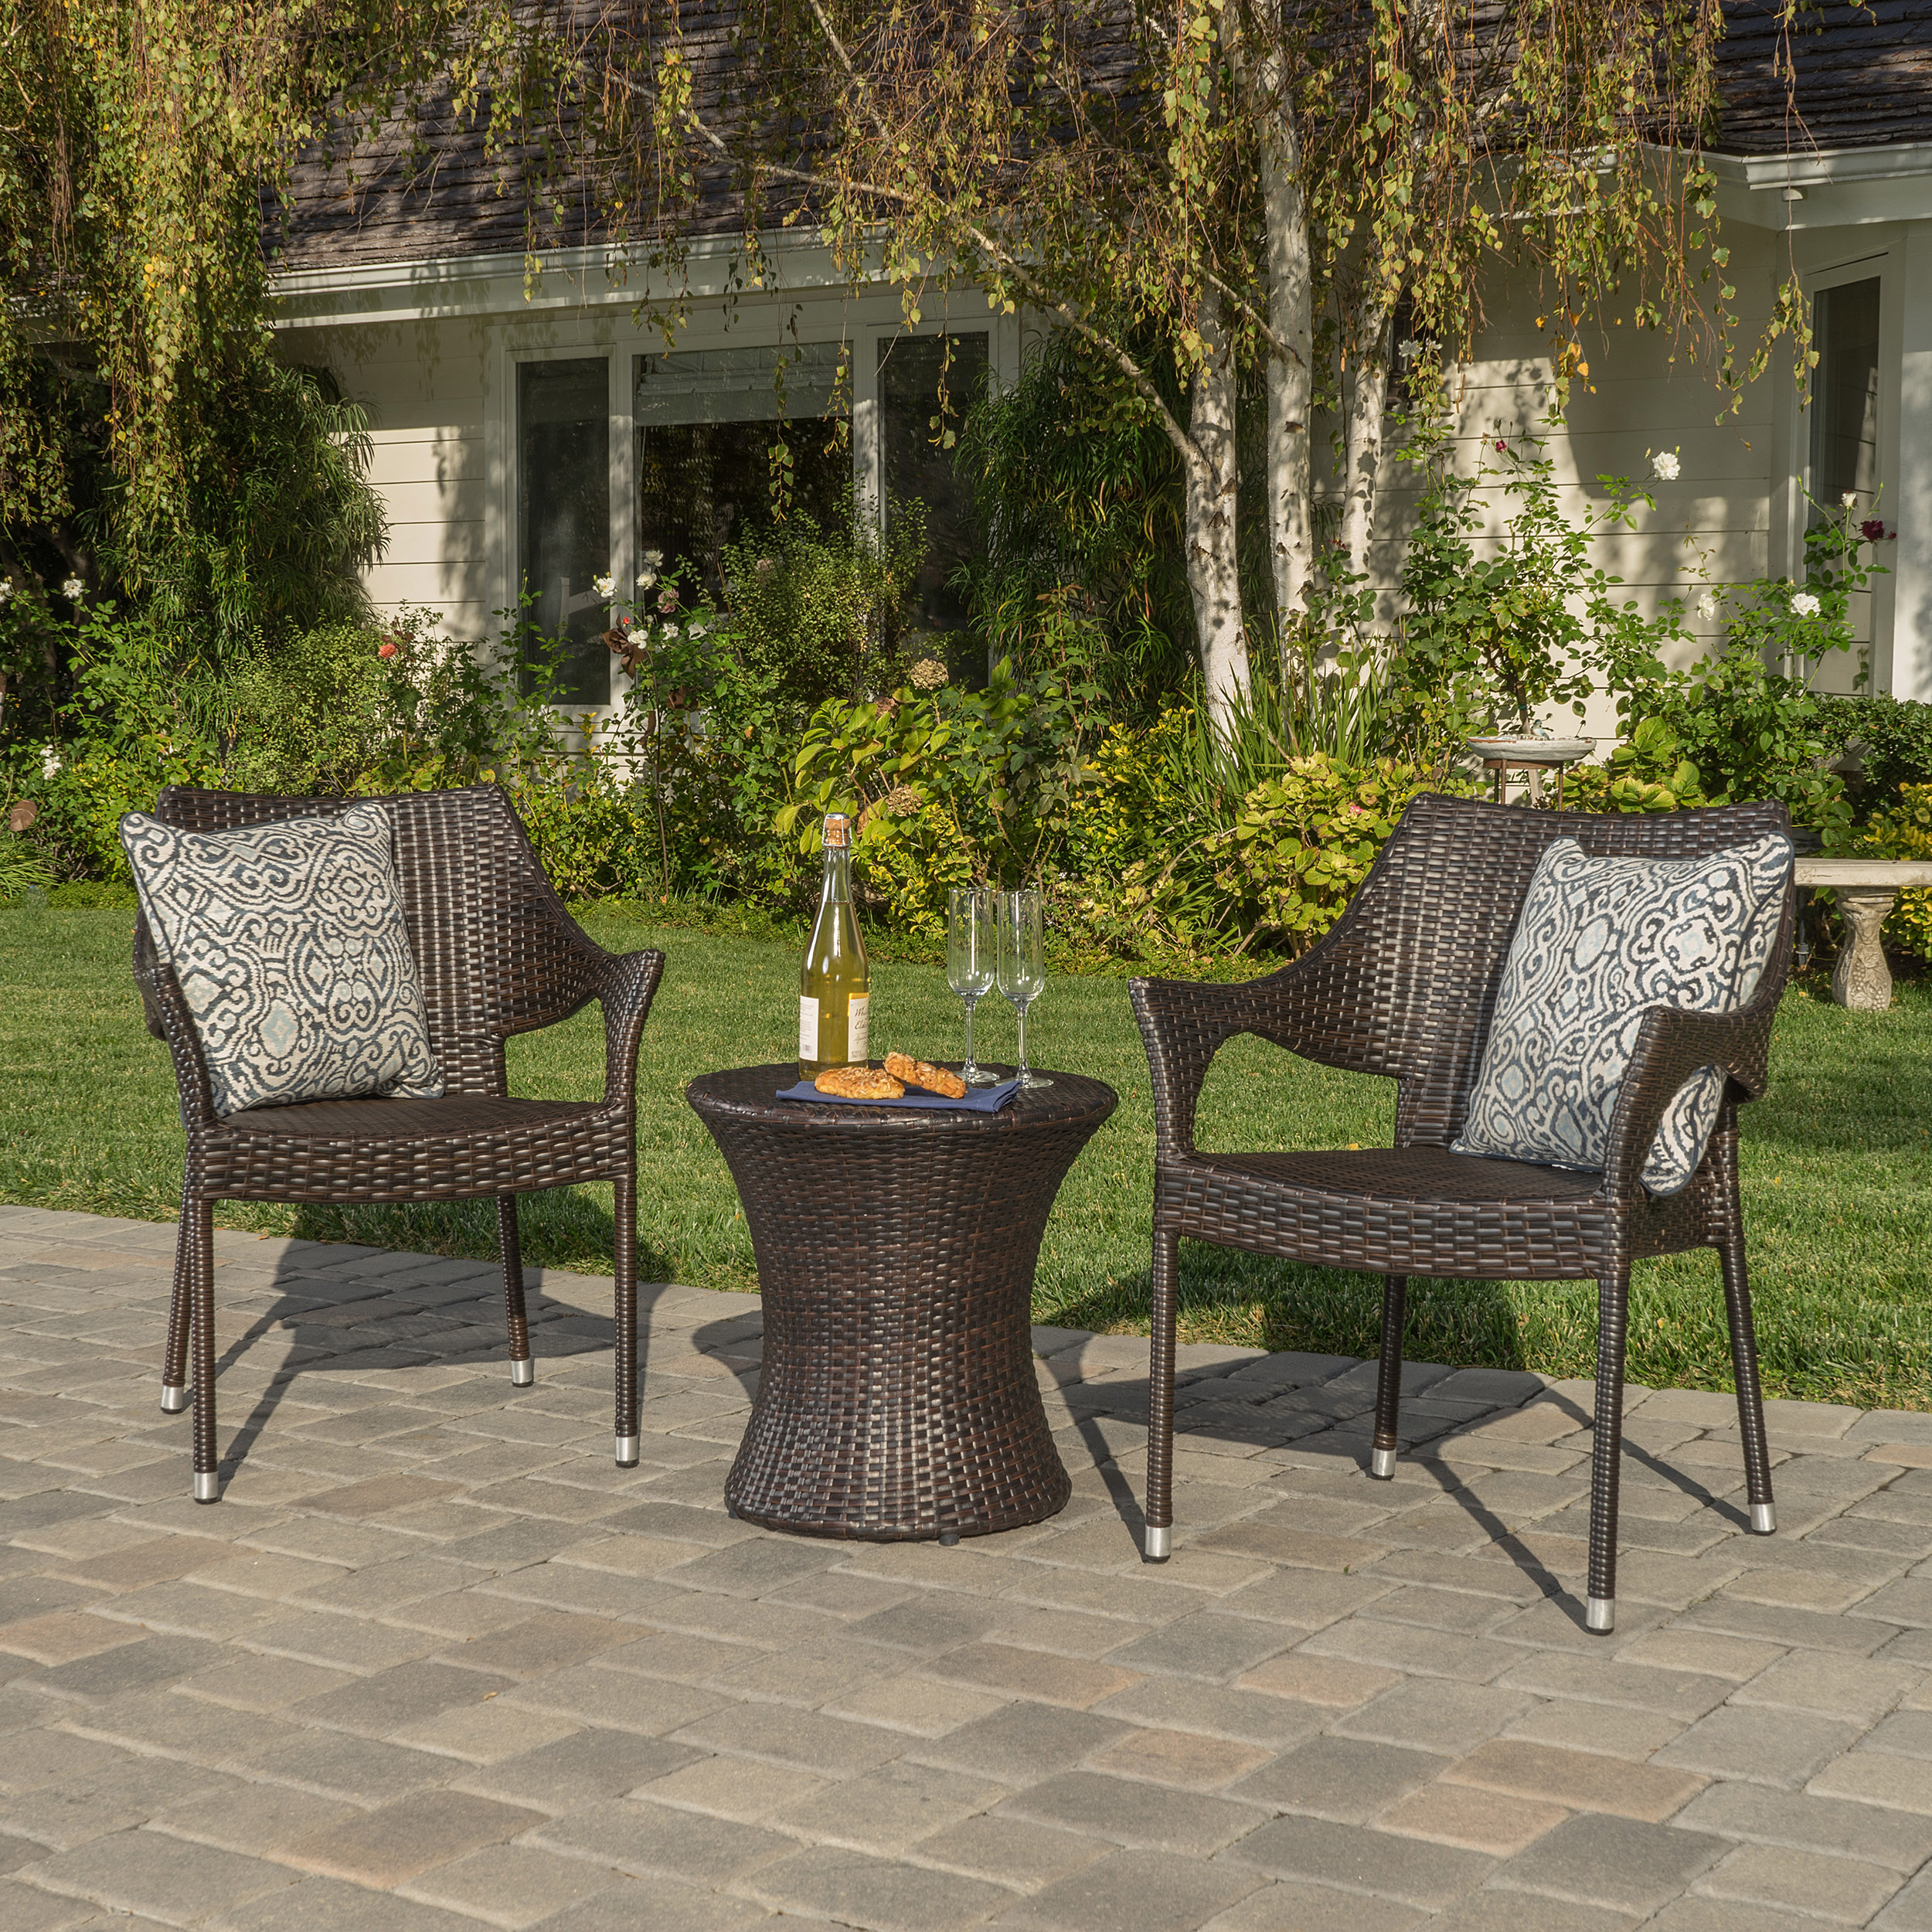 Outdoor Brown Wicker 3 Piece Chat Set with Cushions